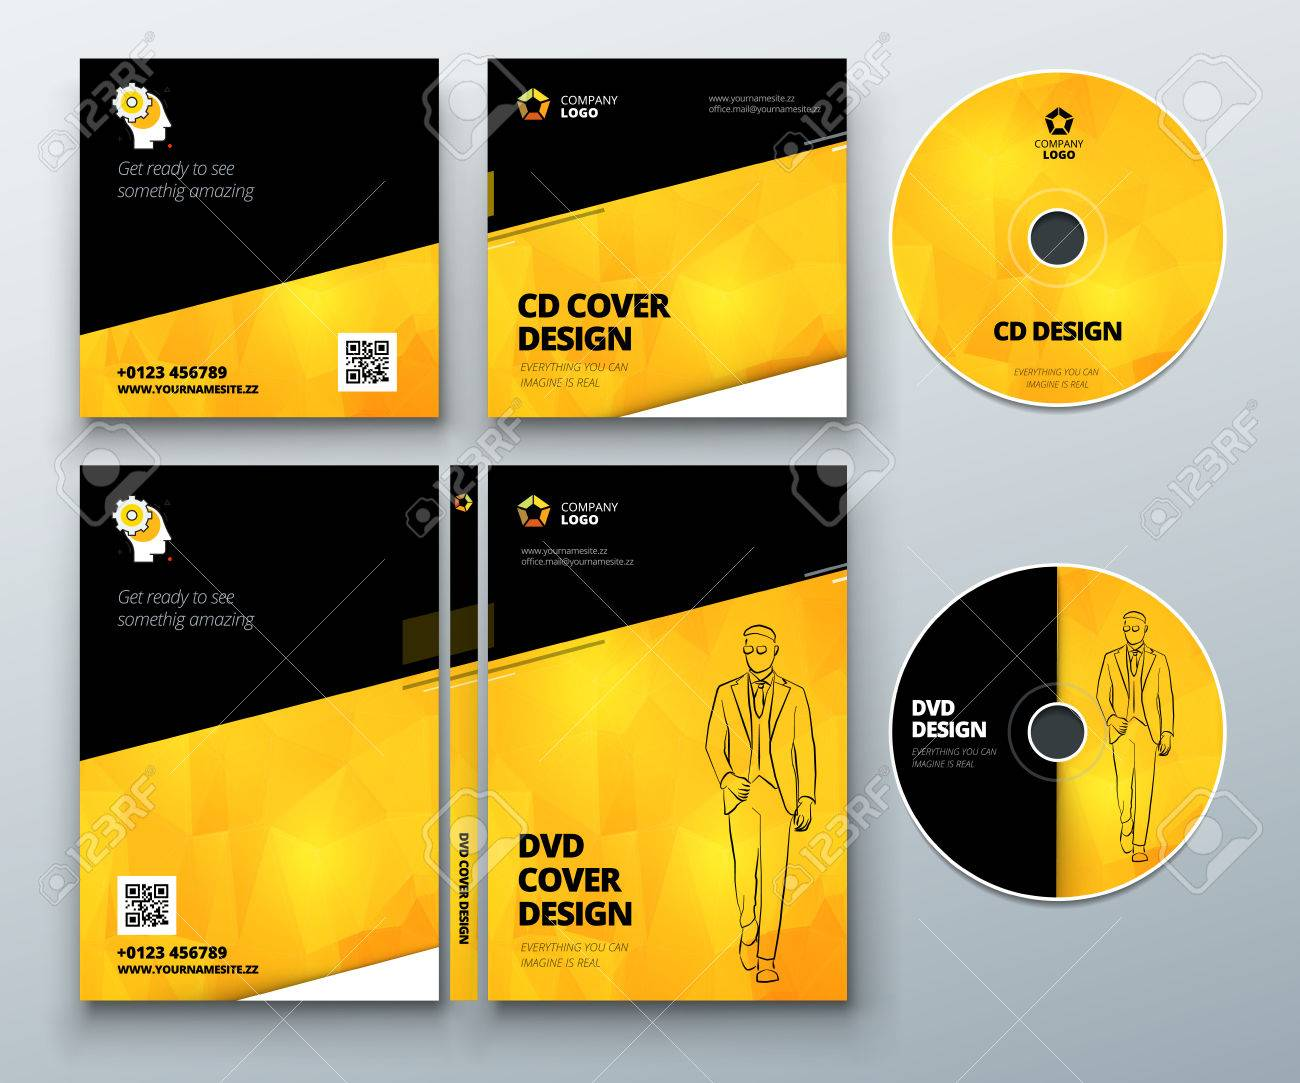 cd envelope dvd case design black yellow corporate business